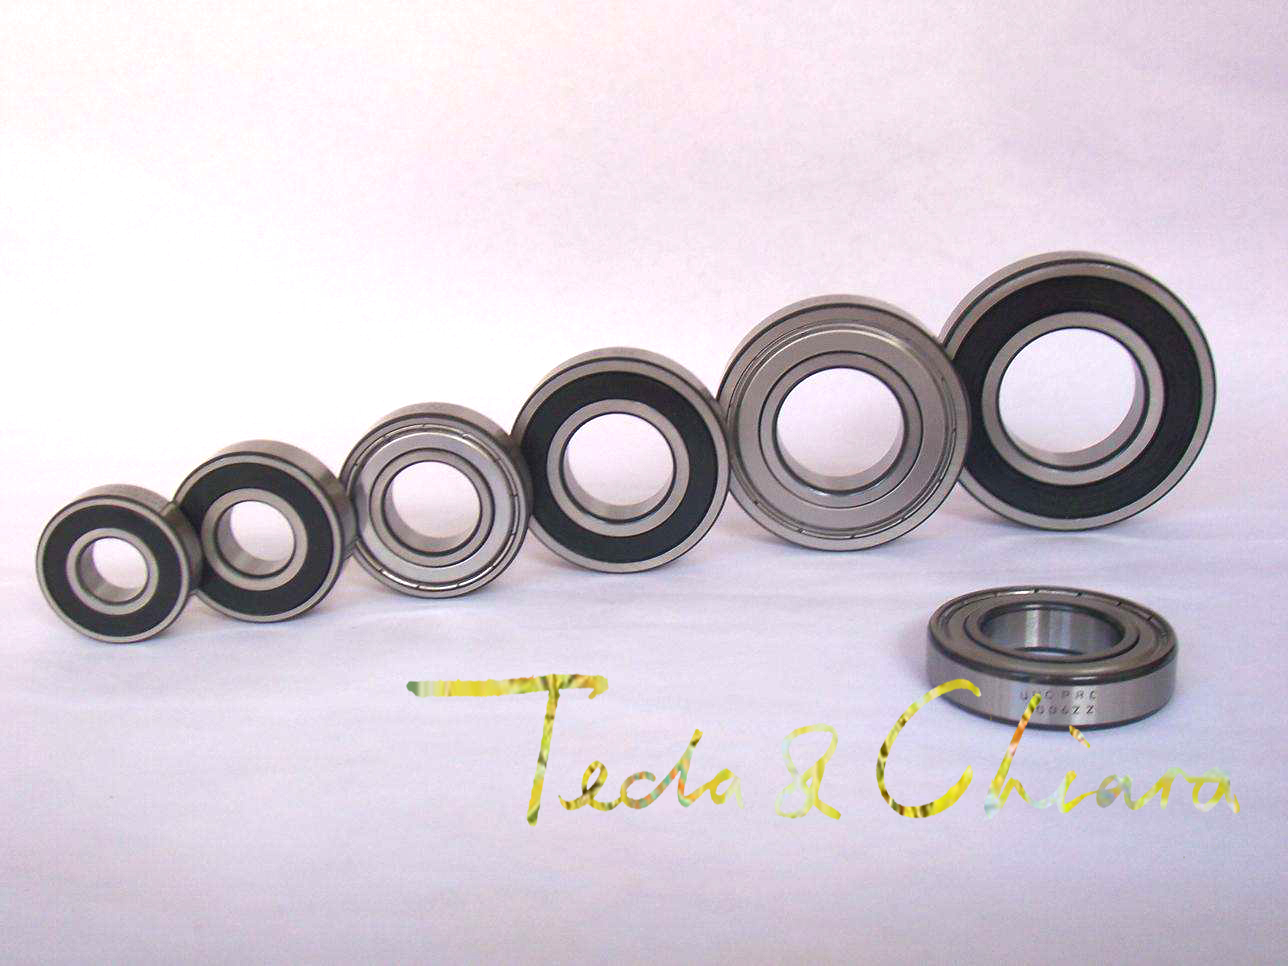 6000 6000ZZ 6000RS 6000-2Z 6000Z 6000-2RS ZZ RS RZ 2RZ Deep Groove Ball Bearings 10 x 26 x 8mm High Quality free shipping 25x47x12mm deep groove ball bearings 6005 zz 2z 6005zz bearing 6005zz 6005 2rs